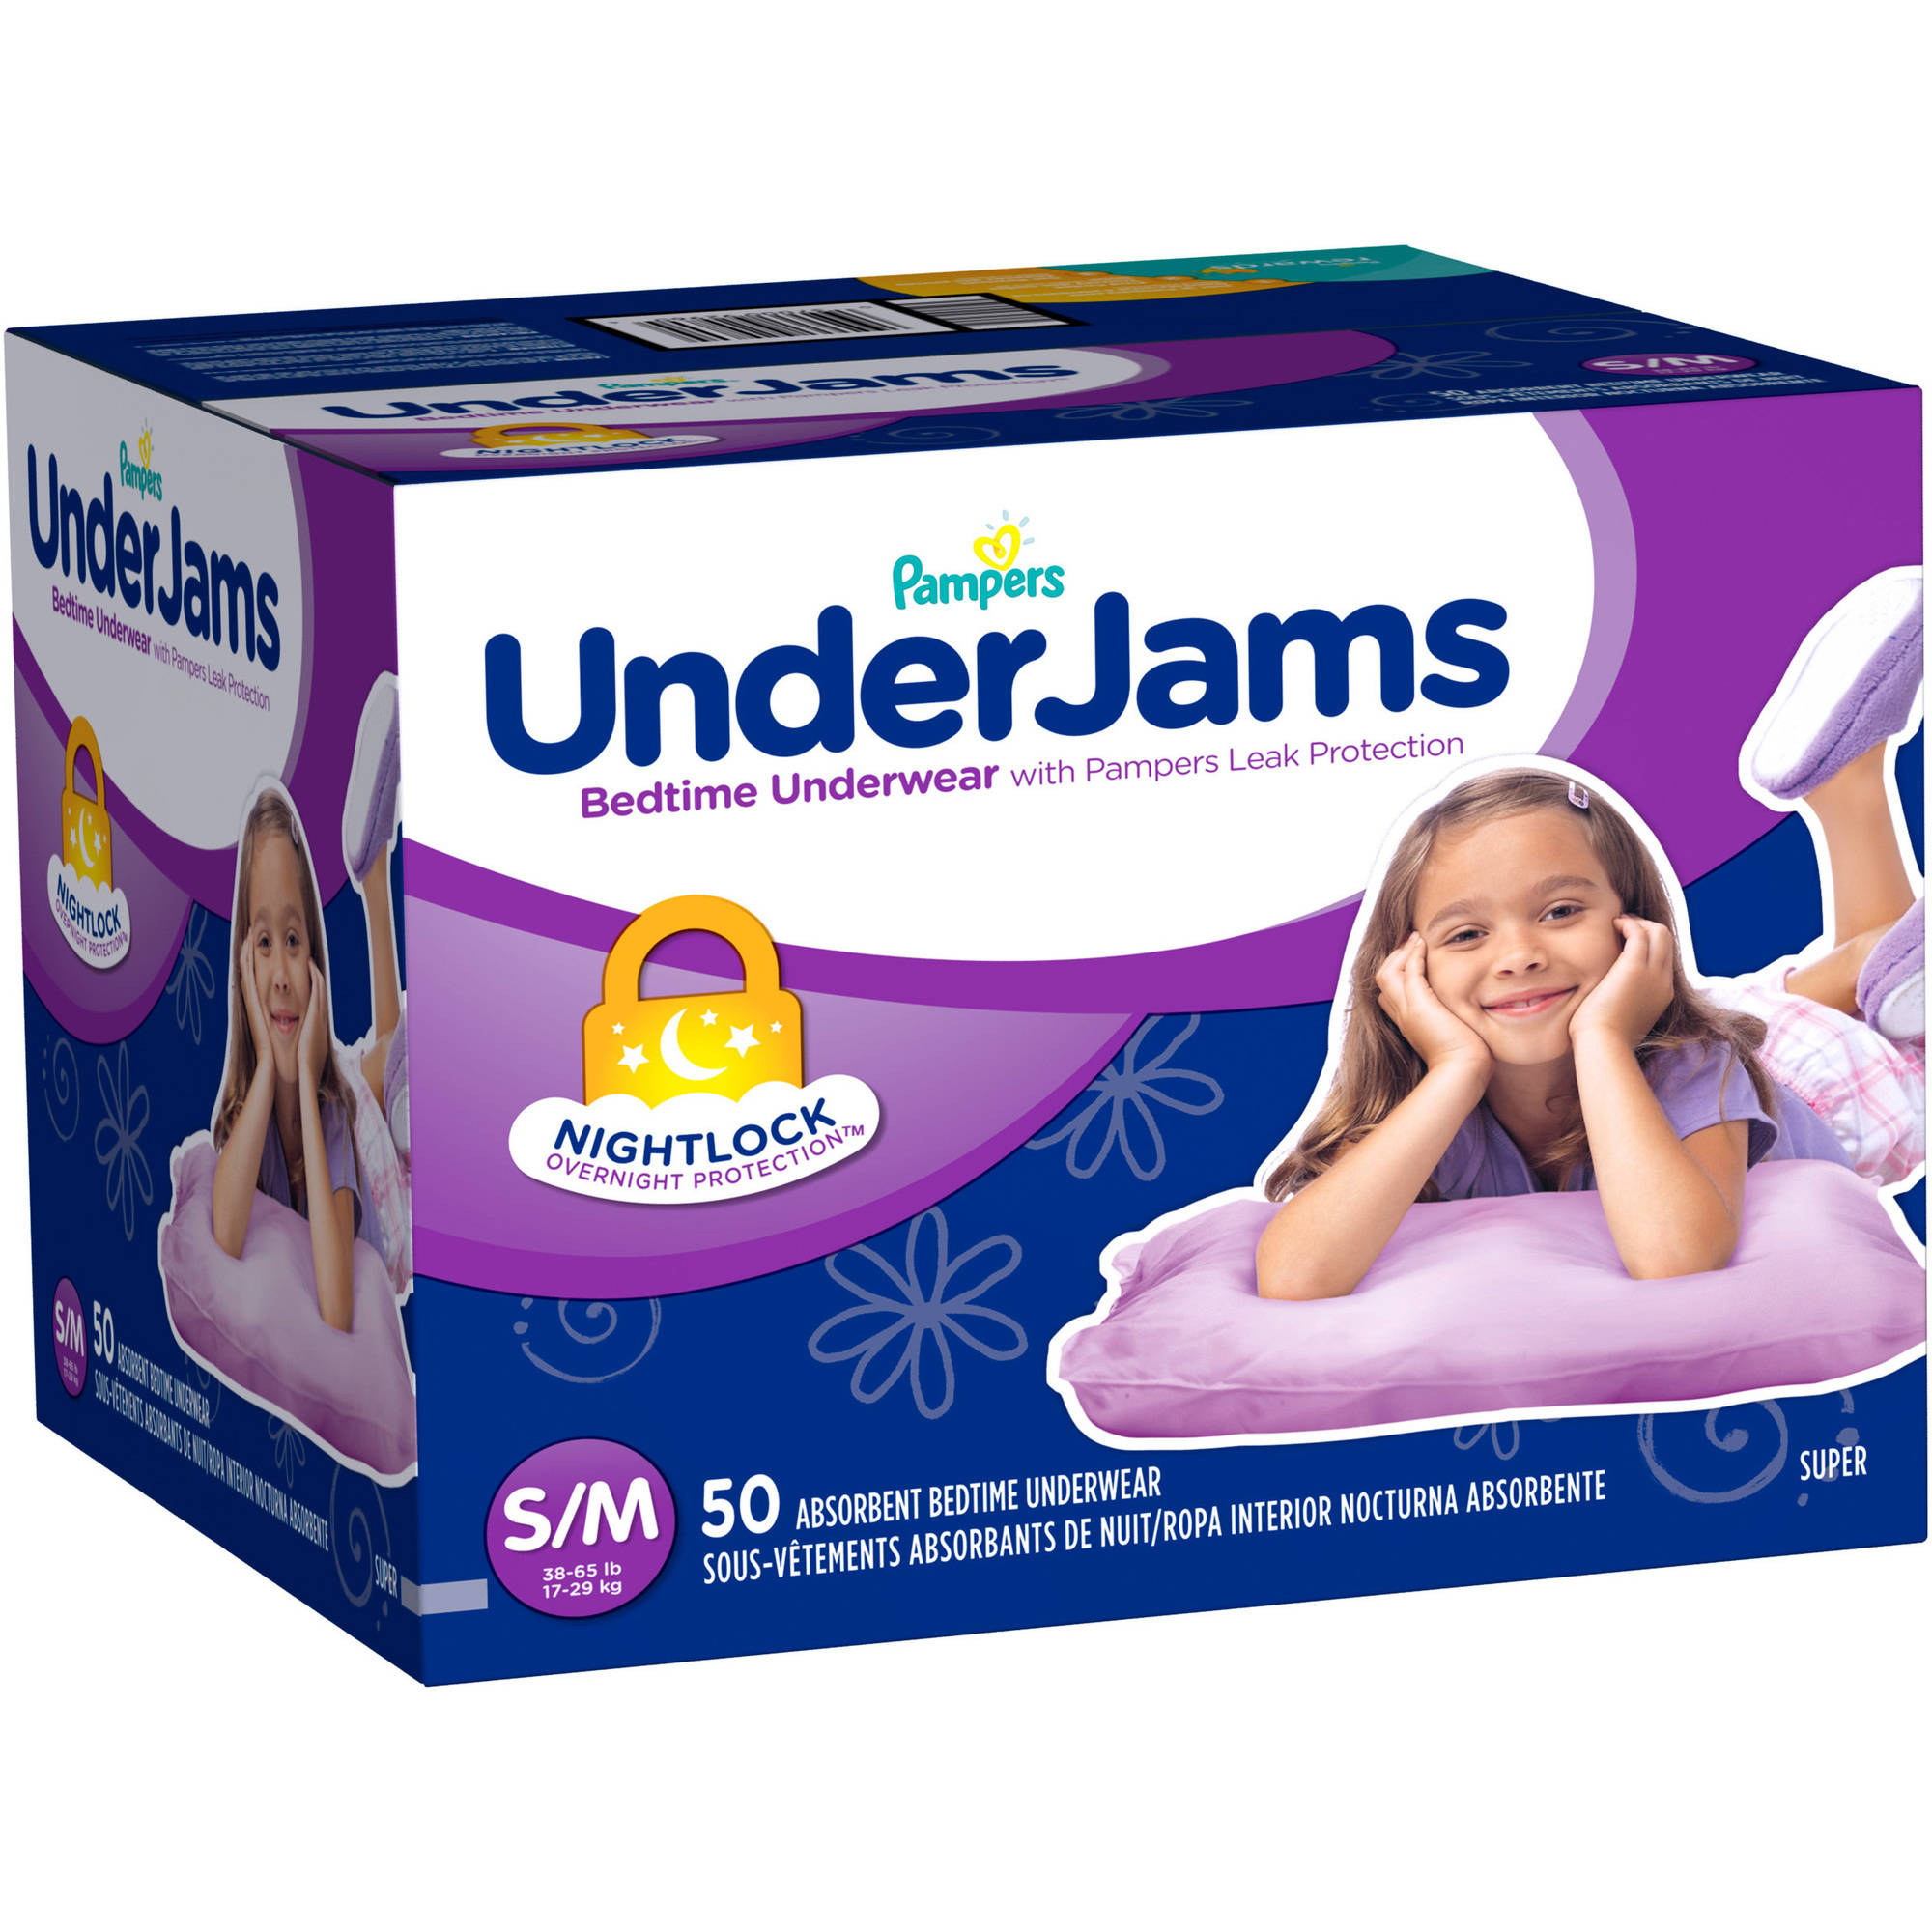 Pampers UnderJams Girls' Bedtime Underwear, Size S/M (Choose Pant Count)